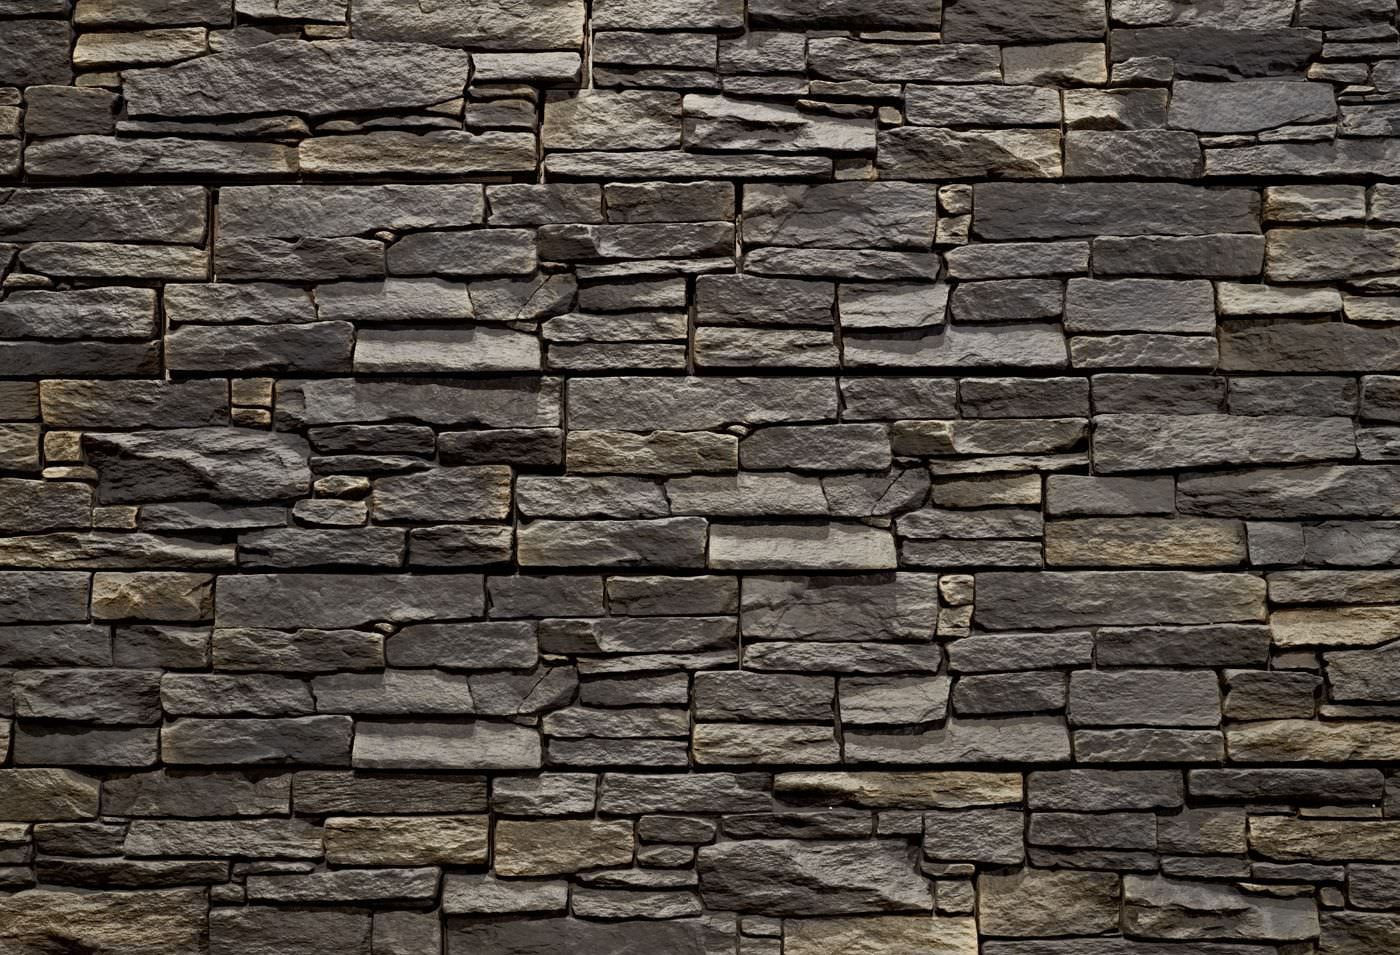 Interior wall cladding panel exterior concrete stone look materials texture Materials for exterior walls